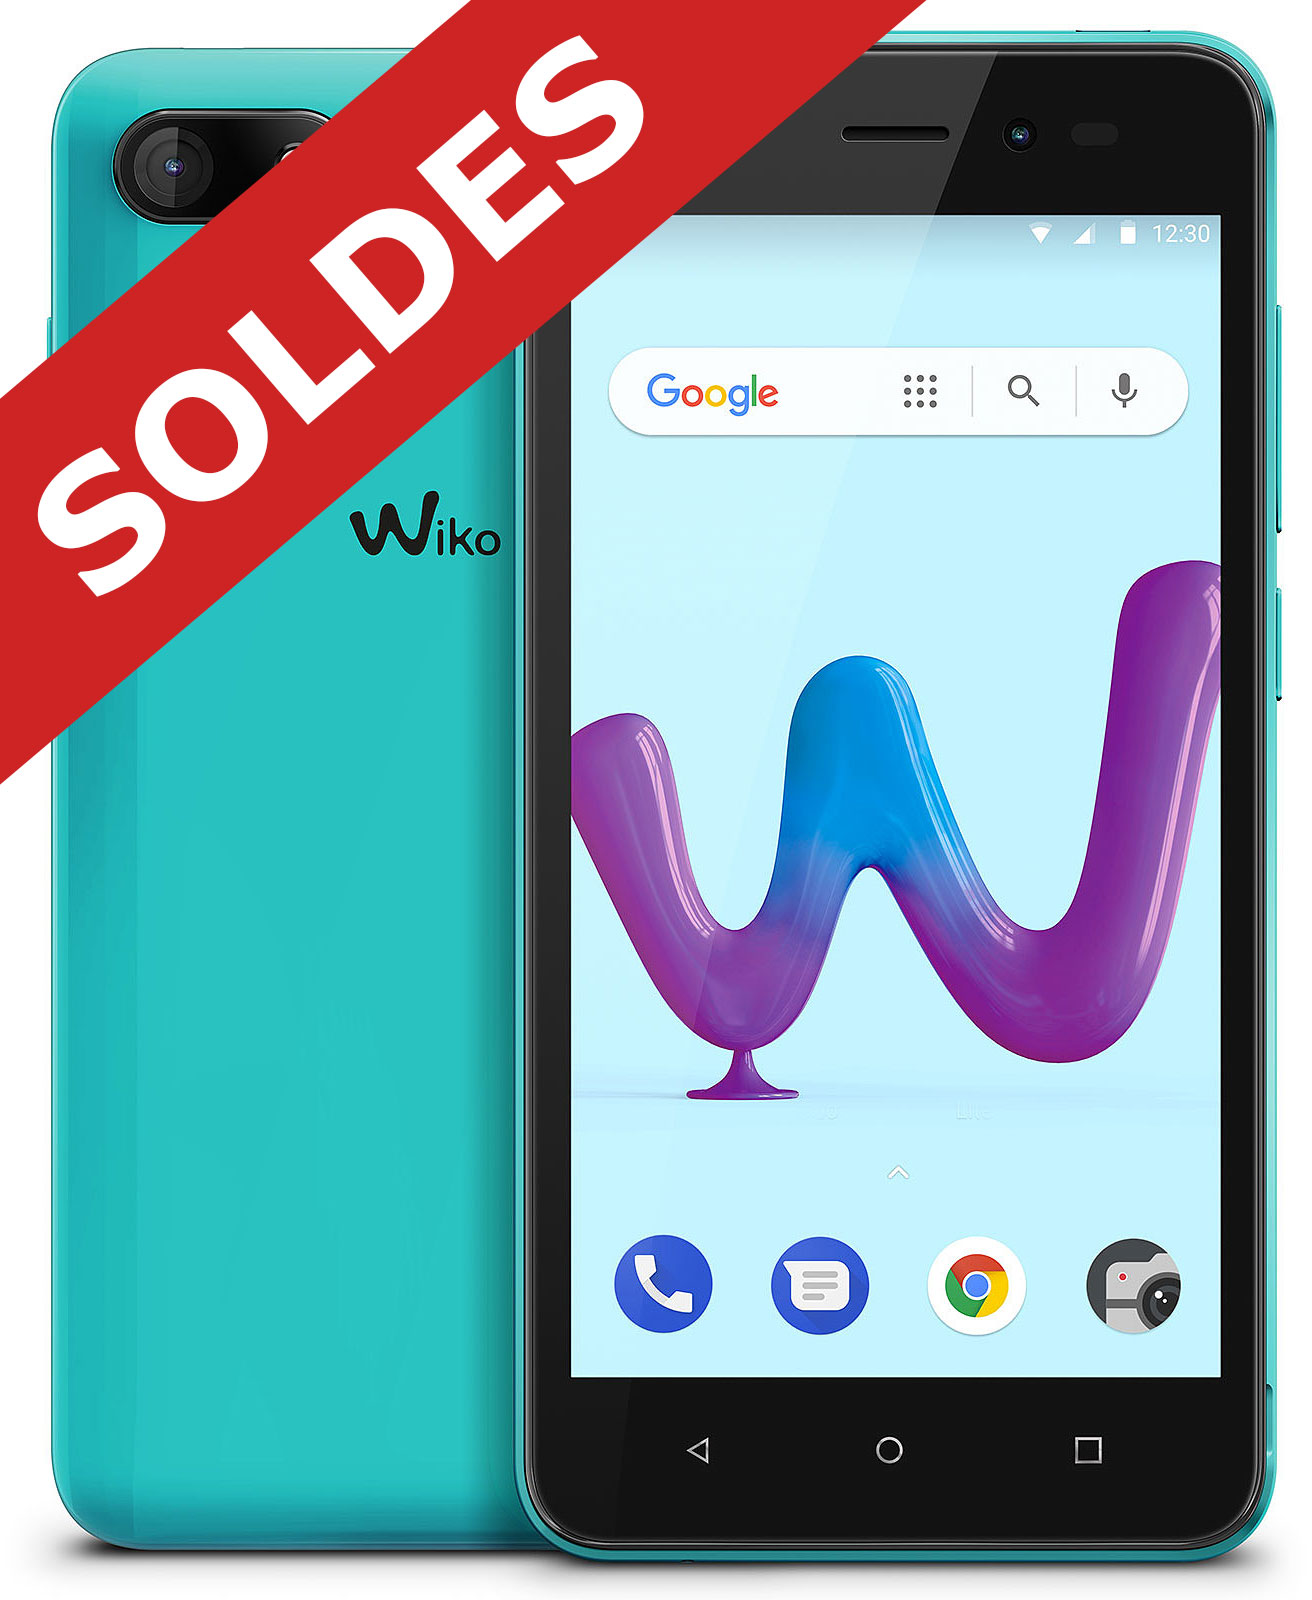 Promo-wiko-soldes